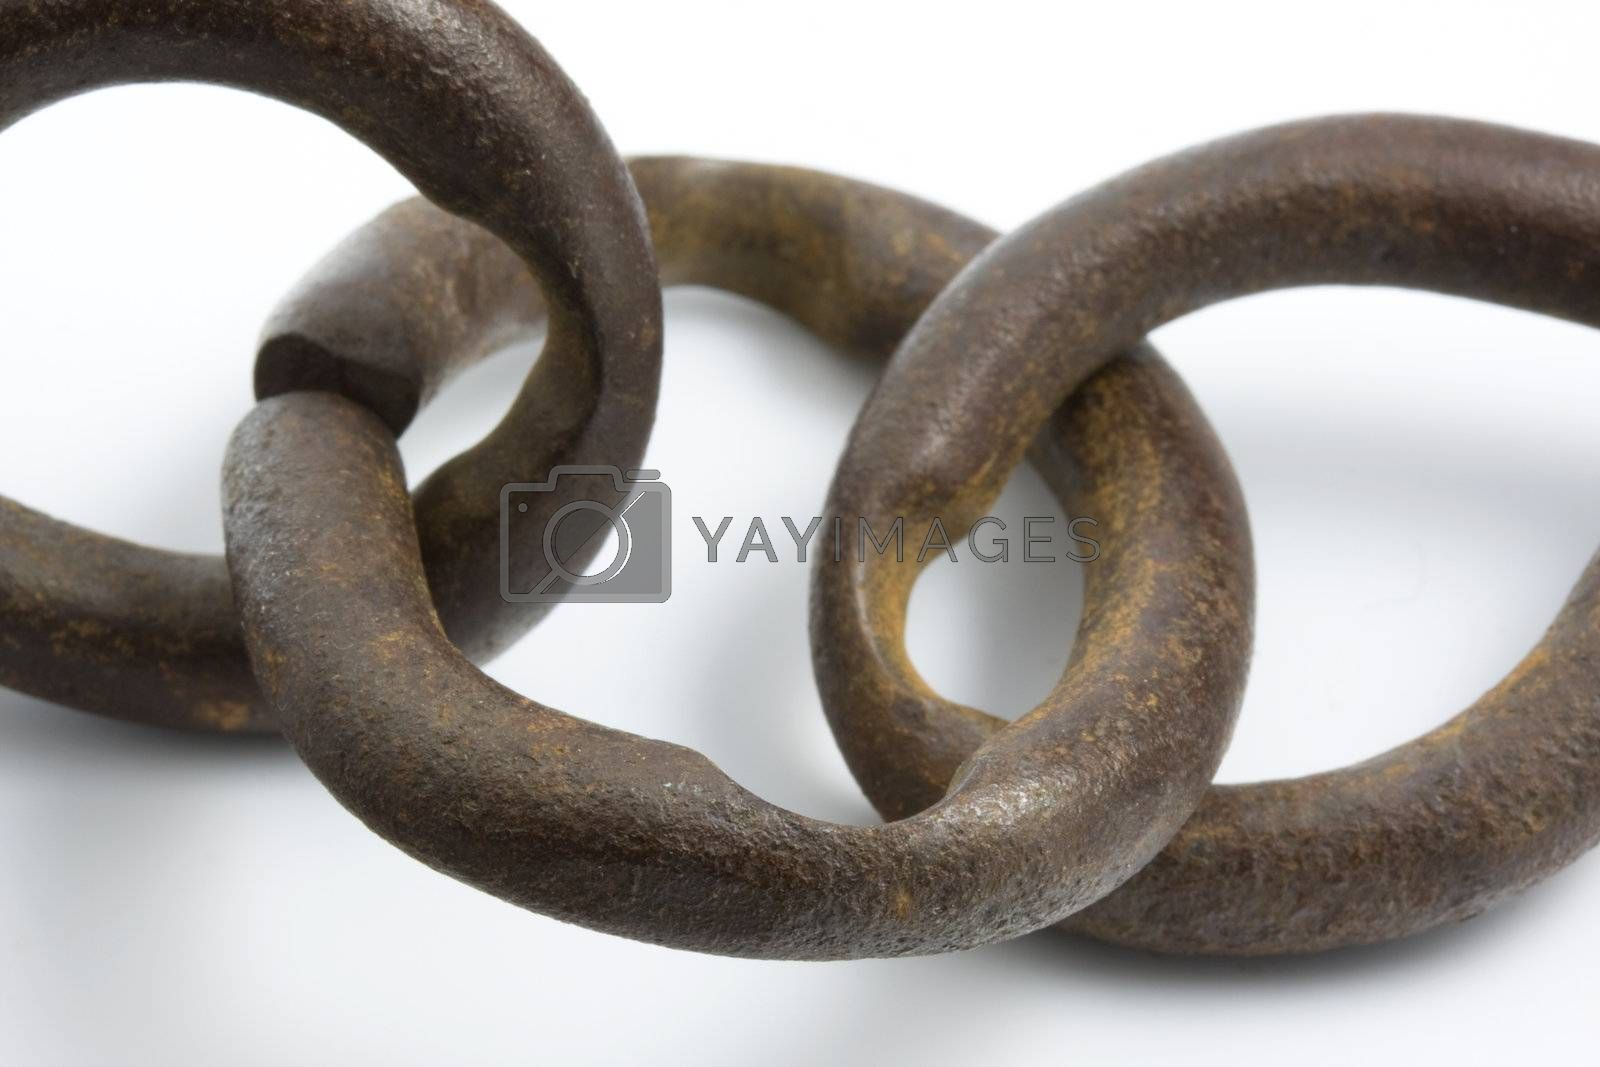 well worn and rusty chain links of some old farm machinery hardware